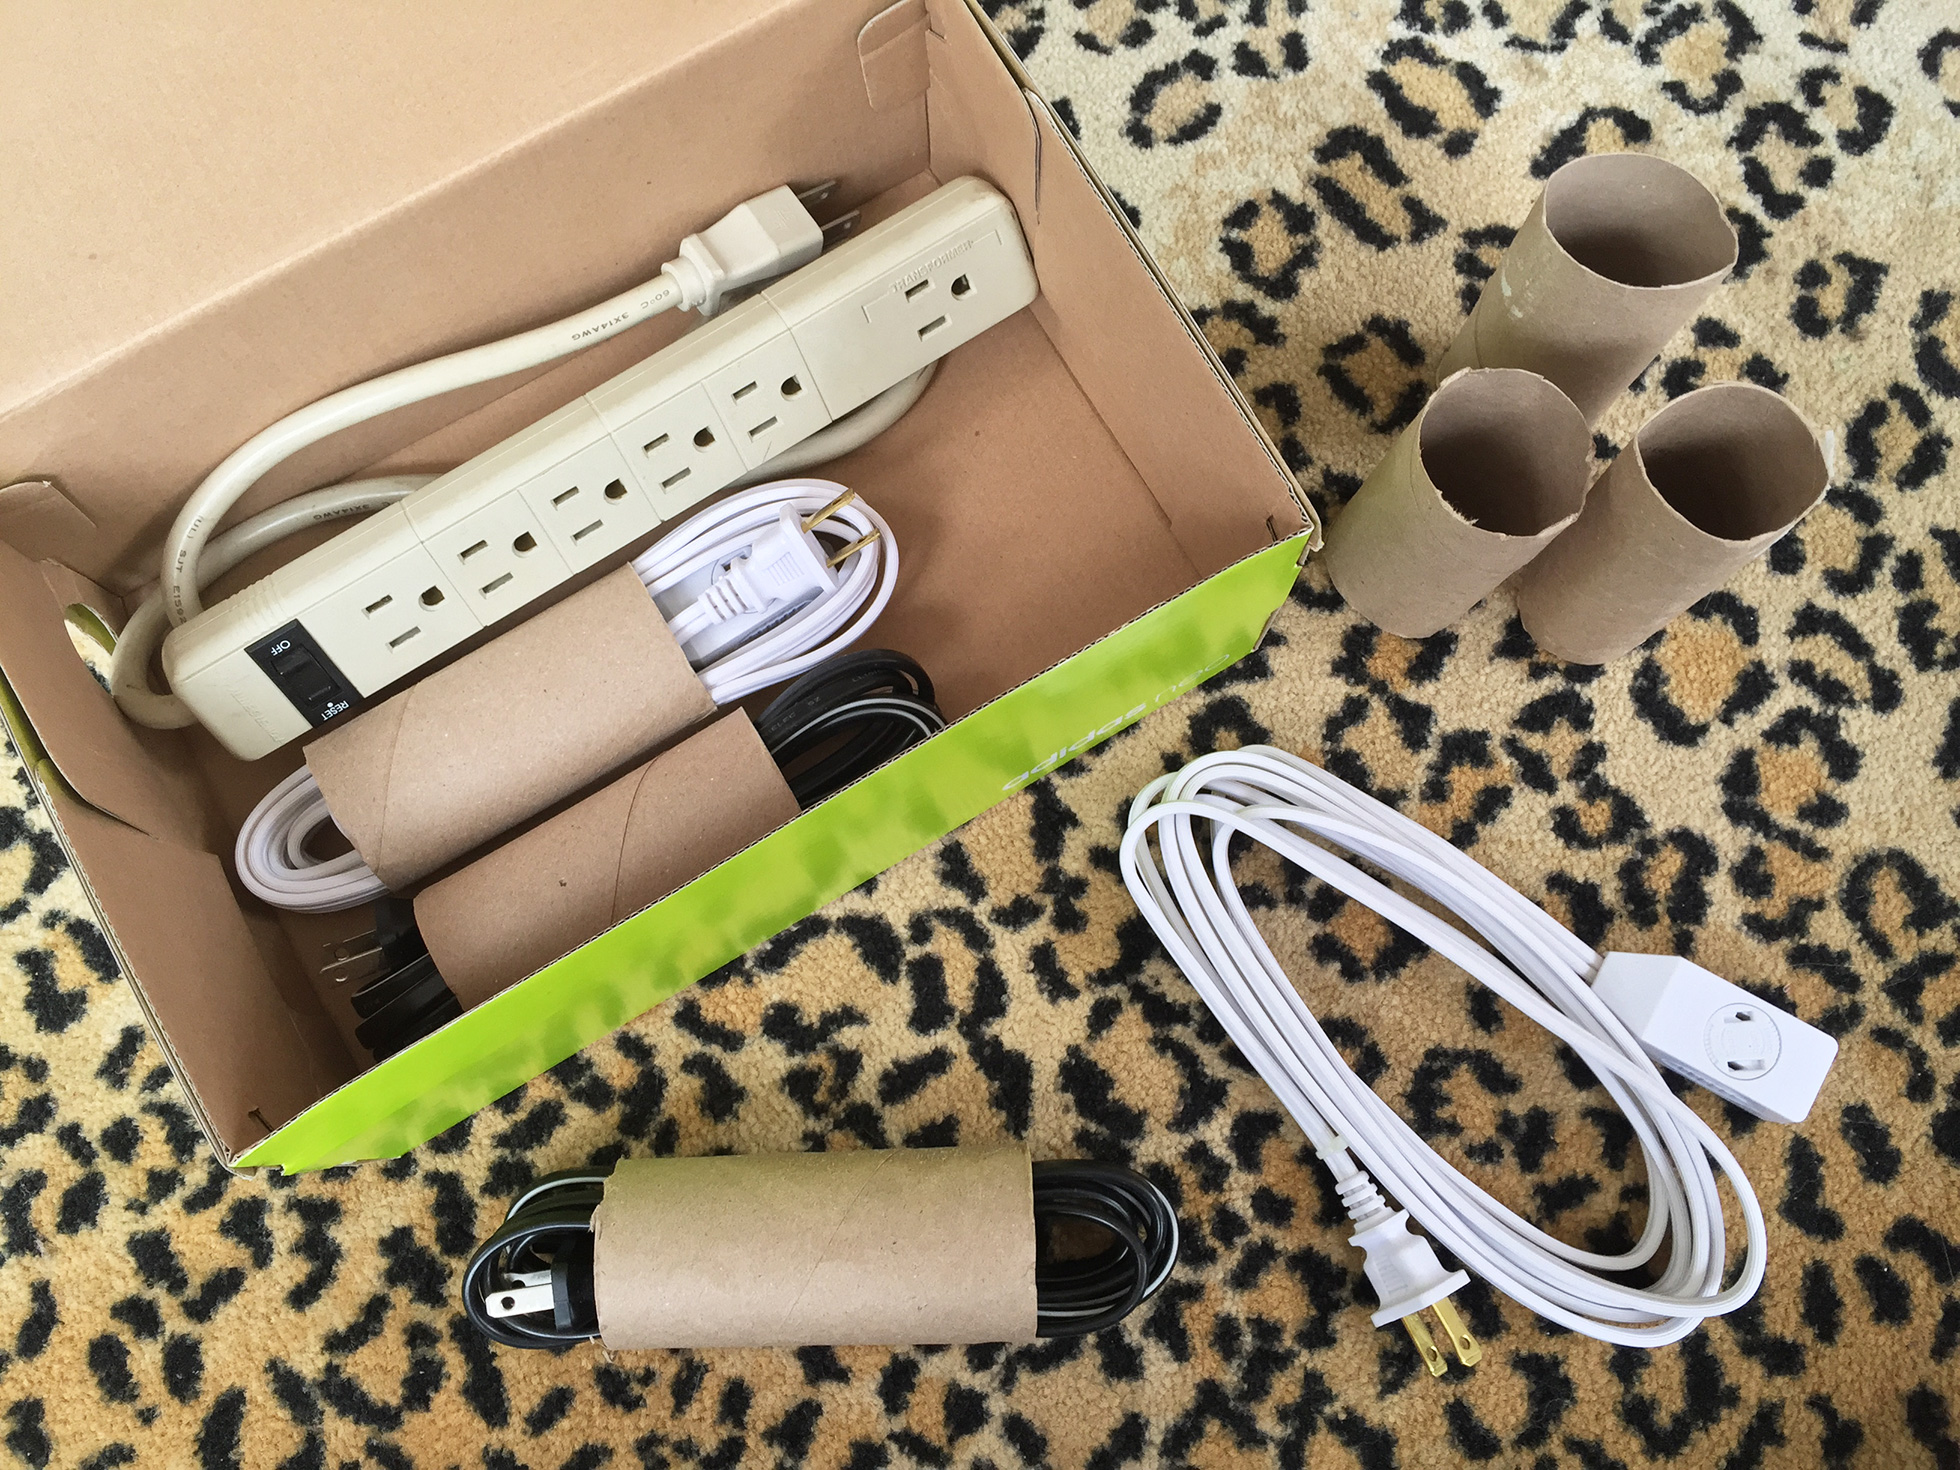 Organize power cords when moving by using toilet paper rolls